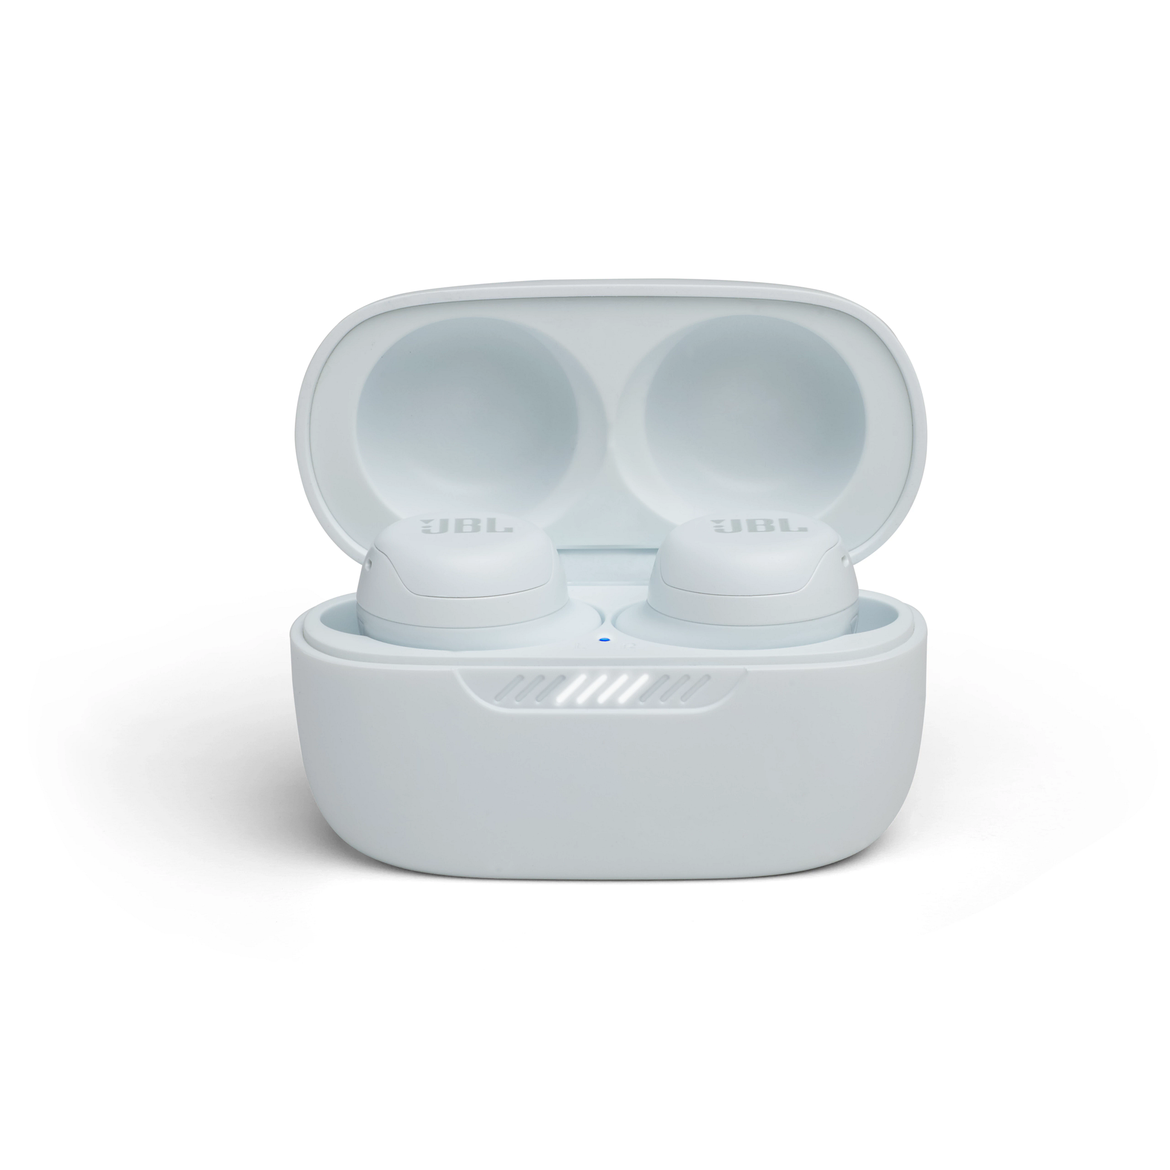 JBL_LIVE_FREE_NC TWS_Product image_Case Open_White